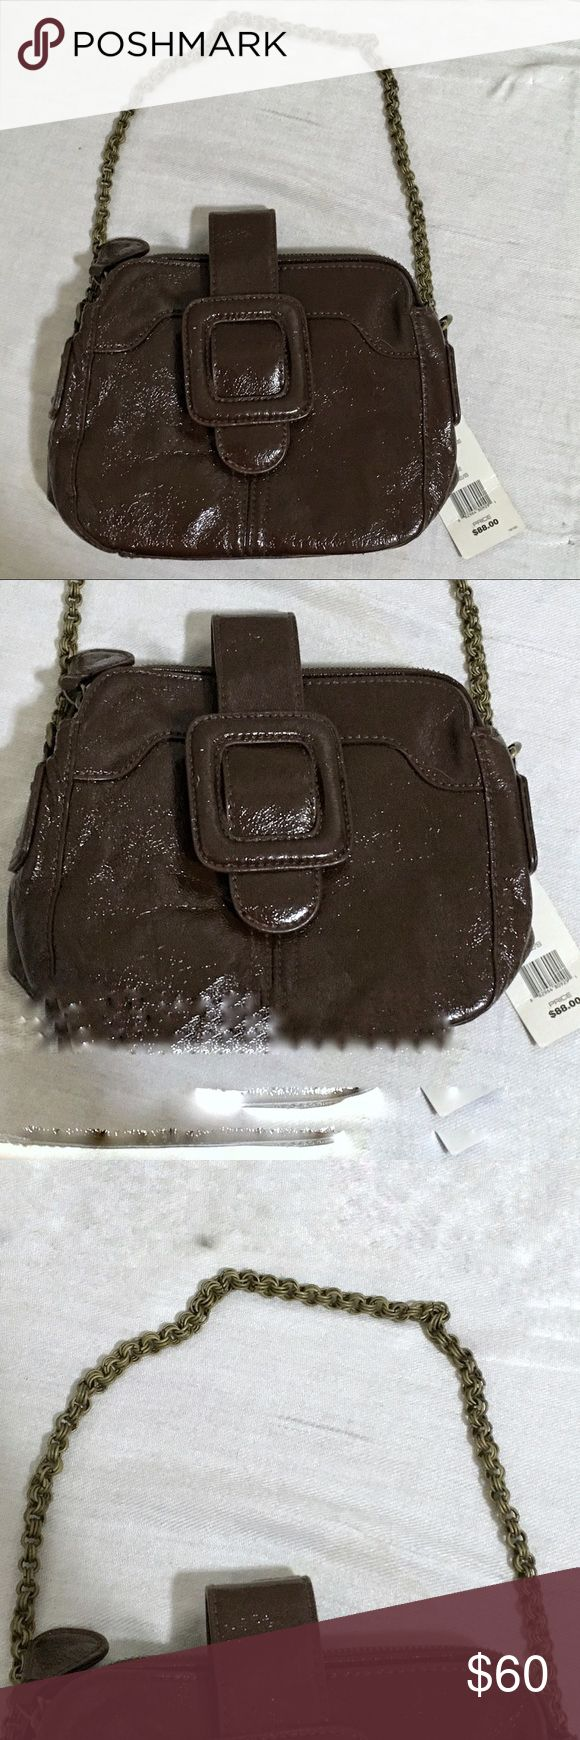 NWT French Connection Handbag New with tags French Connection handbag. Shiny color described on tag as licorice. 9 inches wide by 7 inches tall. Buckle on front snaps closed. Two interior pockets, one is zippered. The zippered compartment has another small zippered pocket. Chain strap about 21 inches, non adjustable. Note some minor damage seen in pictures. .                     💵 Reasonable Offers Welcome 💰Bundle Discount 📦Ships in 1-2 days French Connection Bags Mini Bags